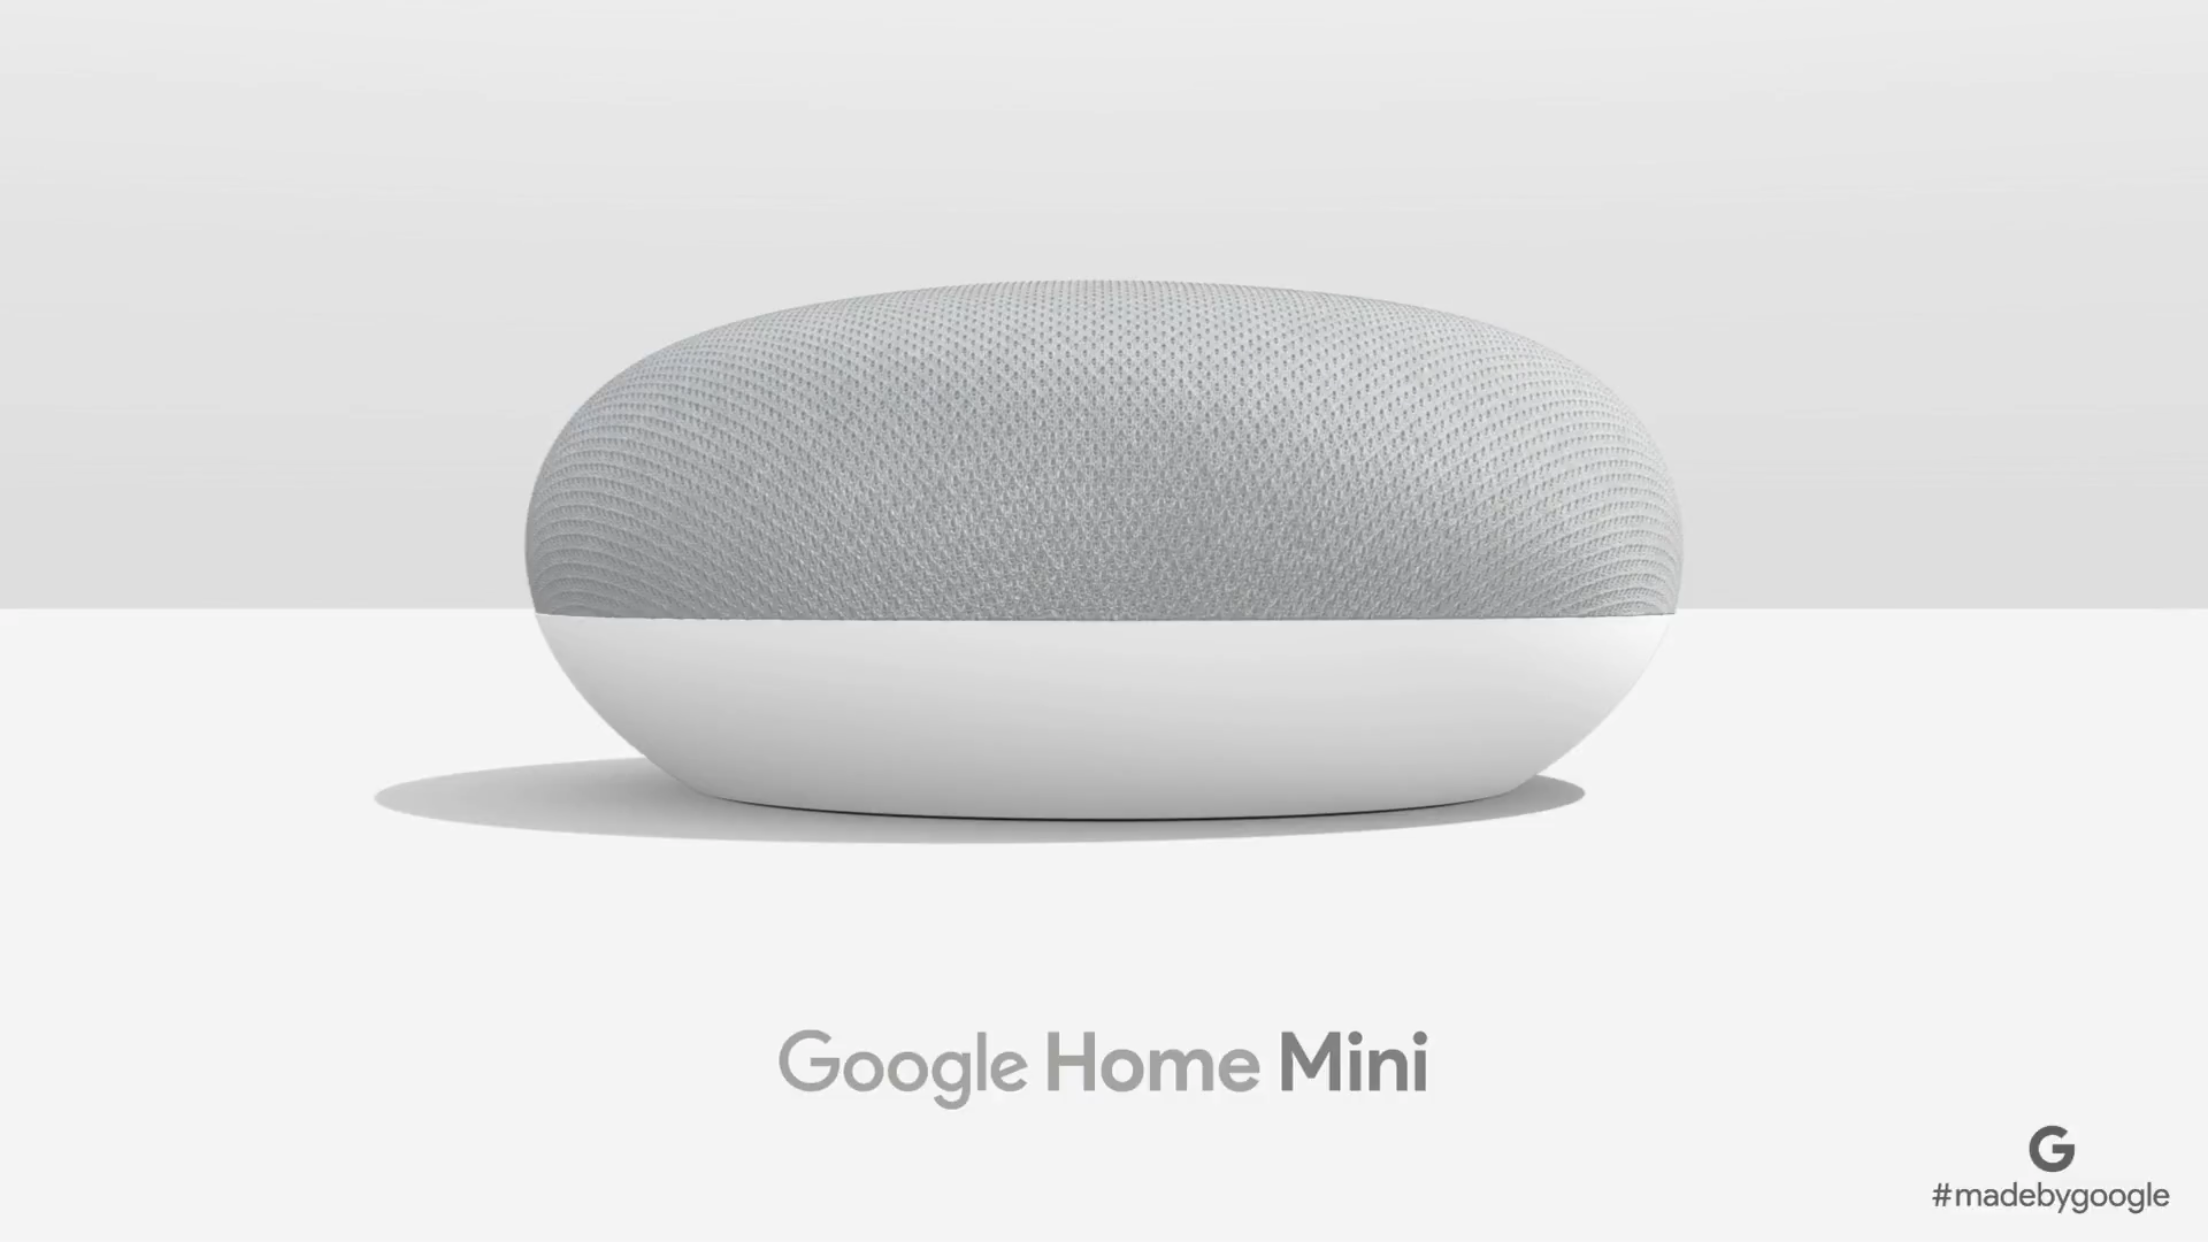 Google Home Decor Google Reveals New Home Mini Poweredgoogle Assistant